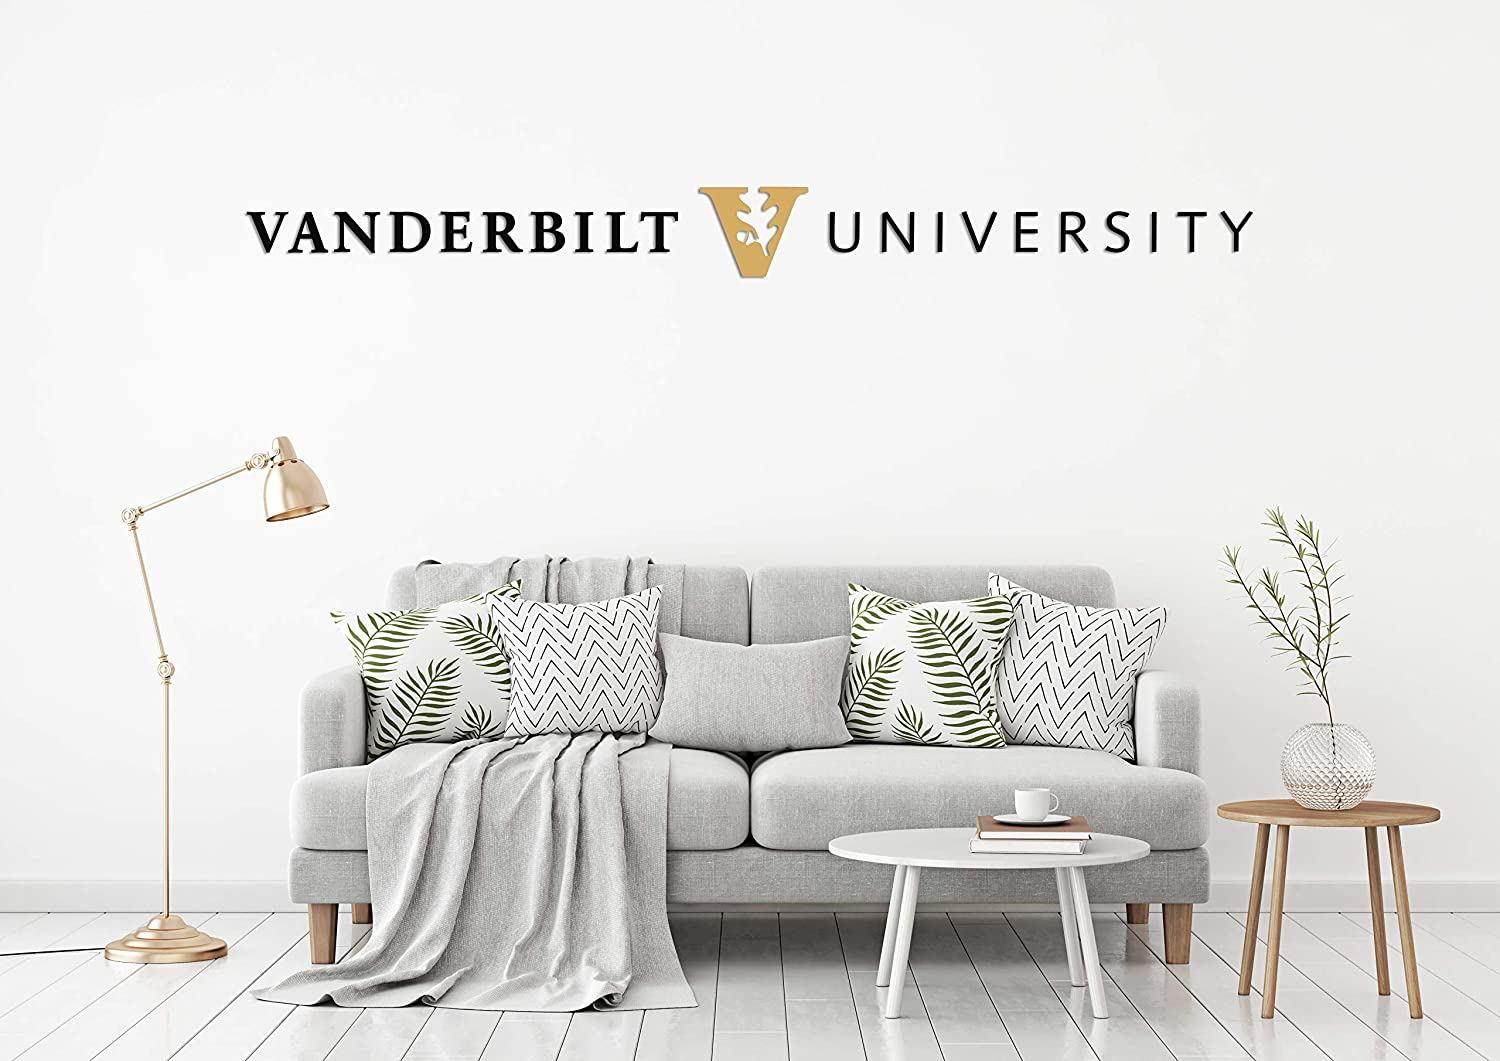 Vanderbilt University Peel and Stick Wall Decal Sticker Removable and Reusable for Home (Wide 30